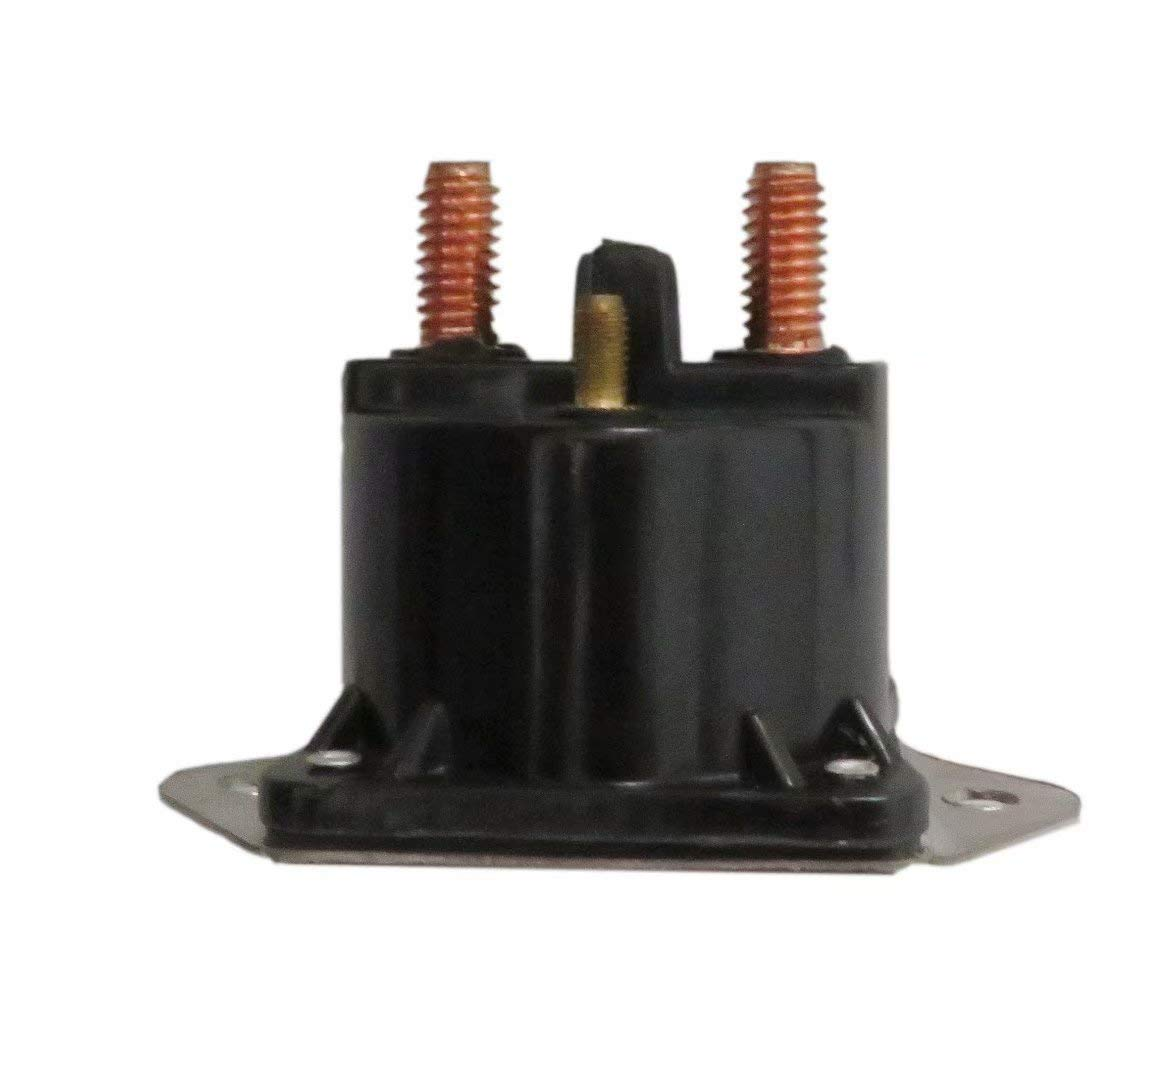 SOLENOID Fit For WARN 72631 28396 SWITCH RELAY XD9000i 9.5ti 4pcs